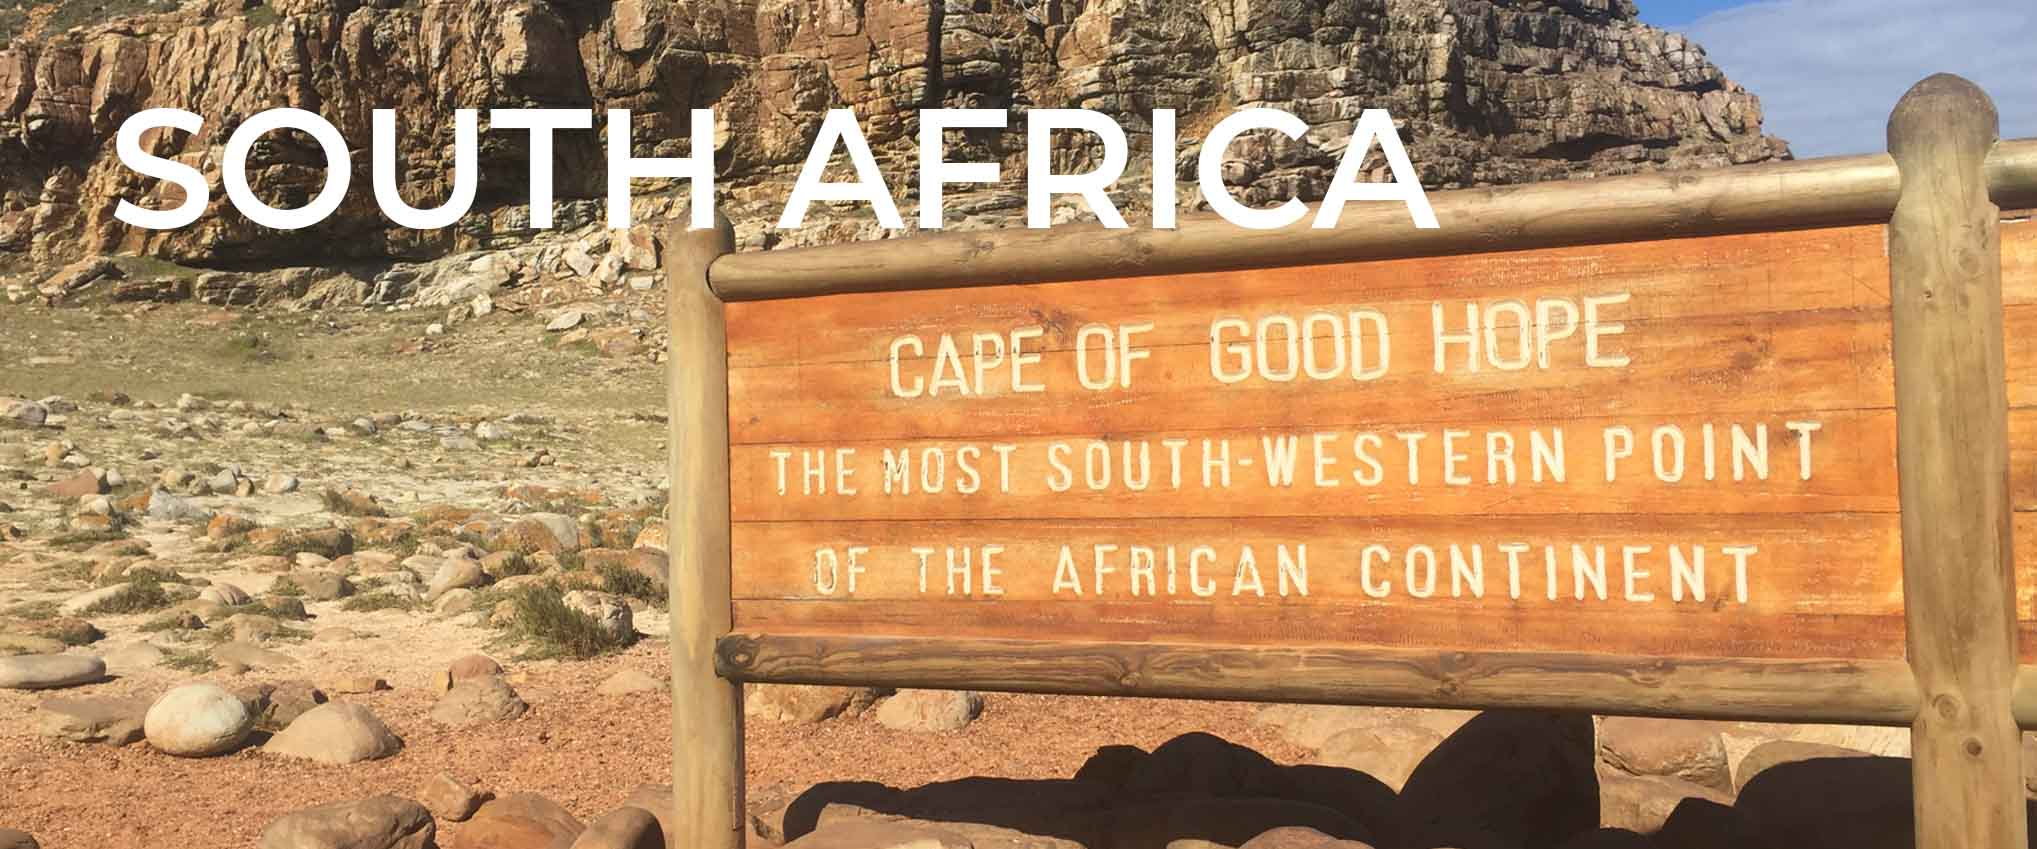 South Africa-page-banner